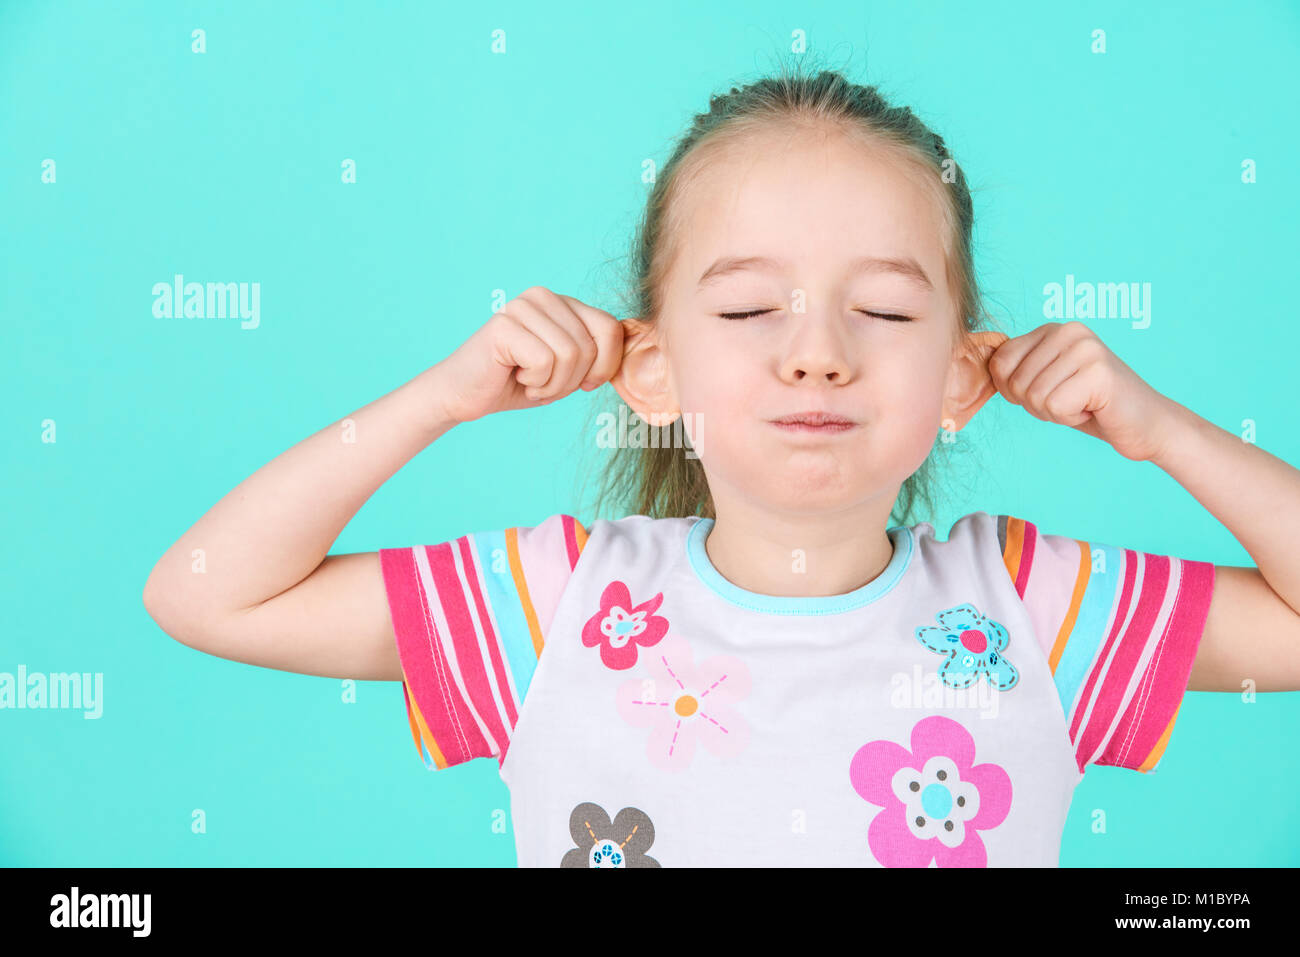 Adorable little girl making funny face. Grimacing concept. Stock Photo